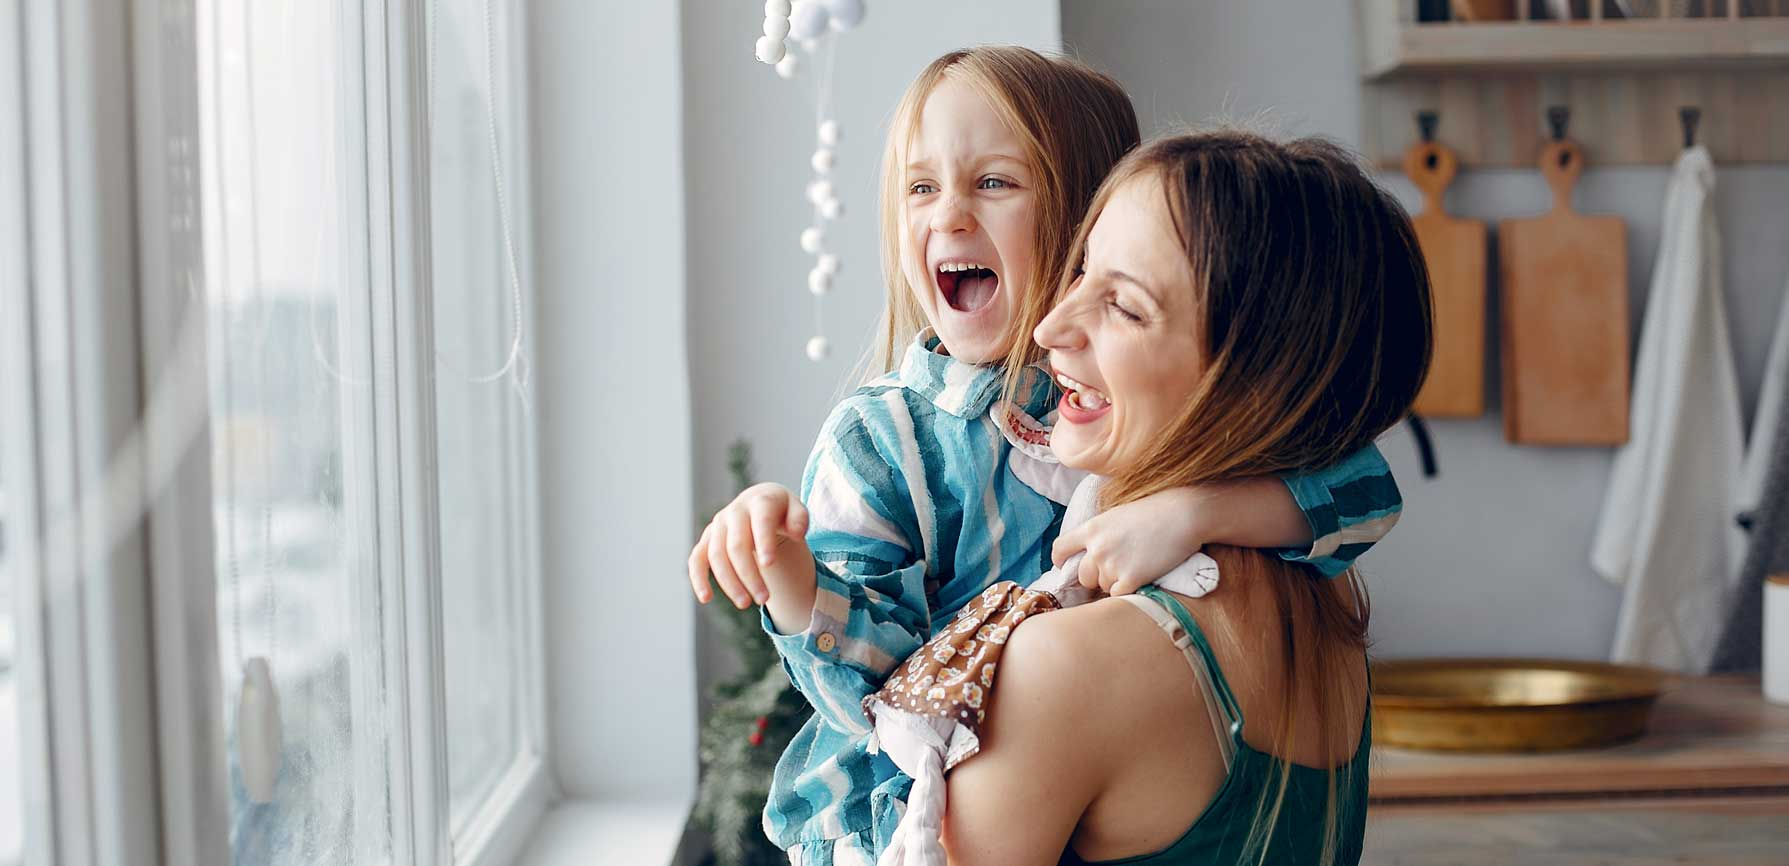 Woman holding young child at a window as both laugh